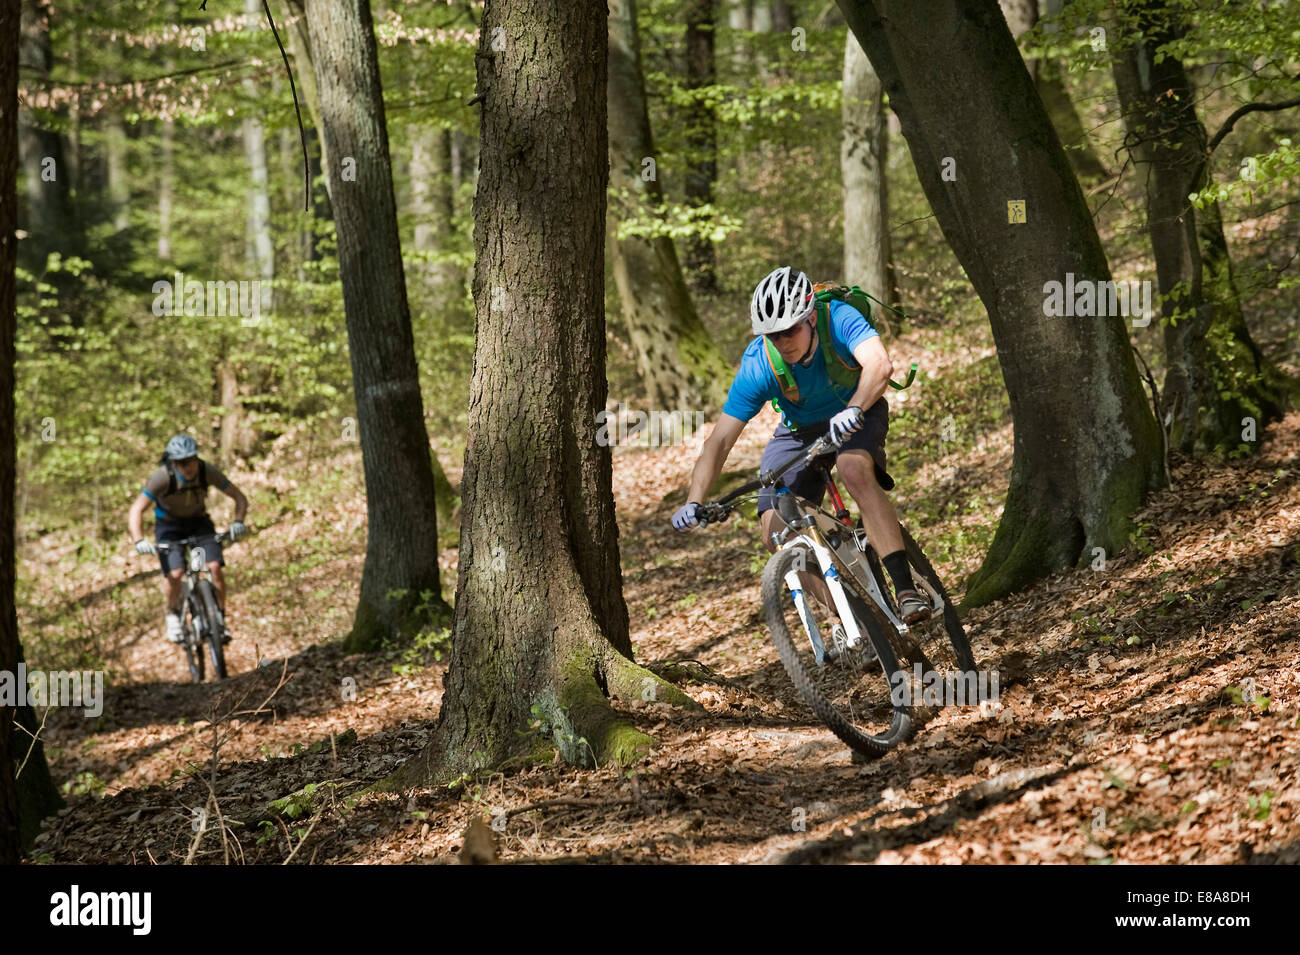 Young men mountainbiking in forest, Bavaria, Germany Stock Photo